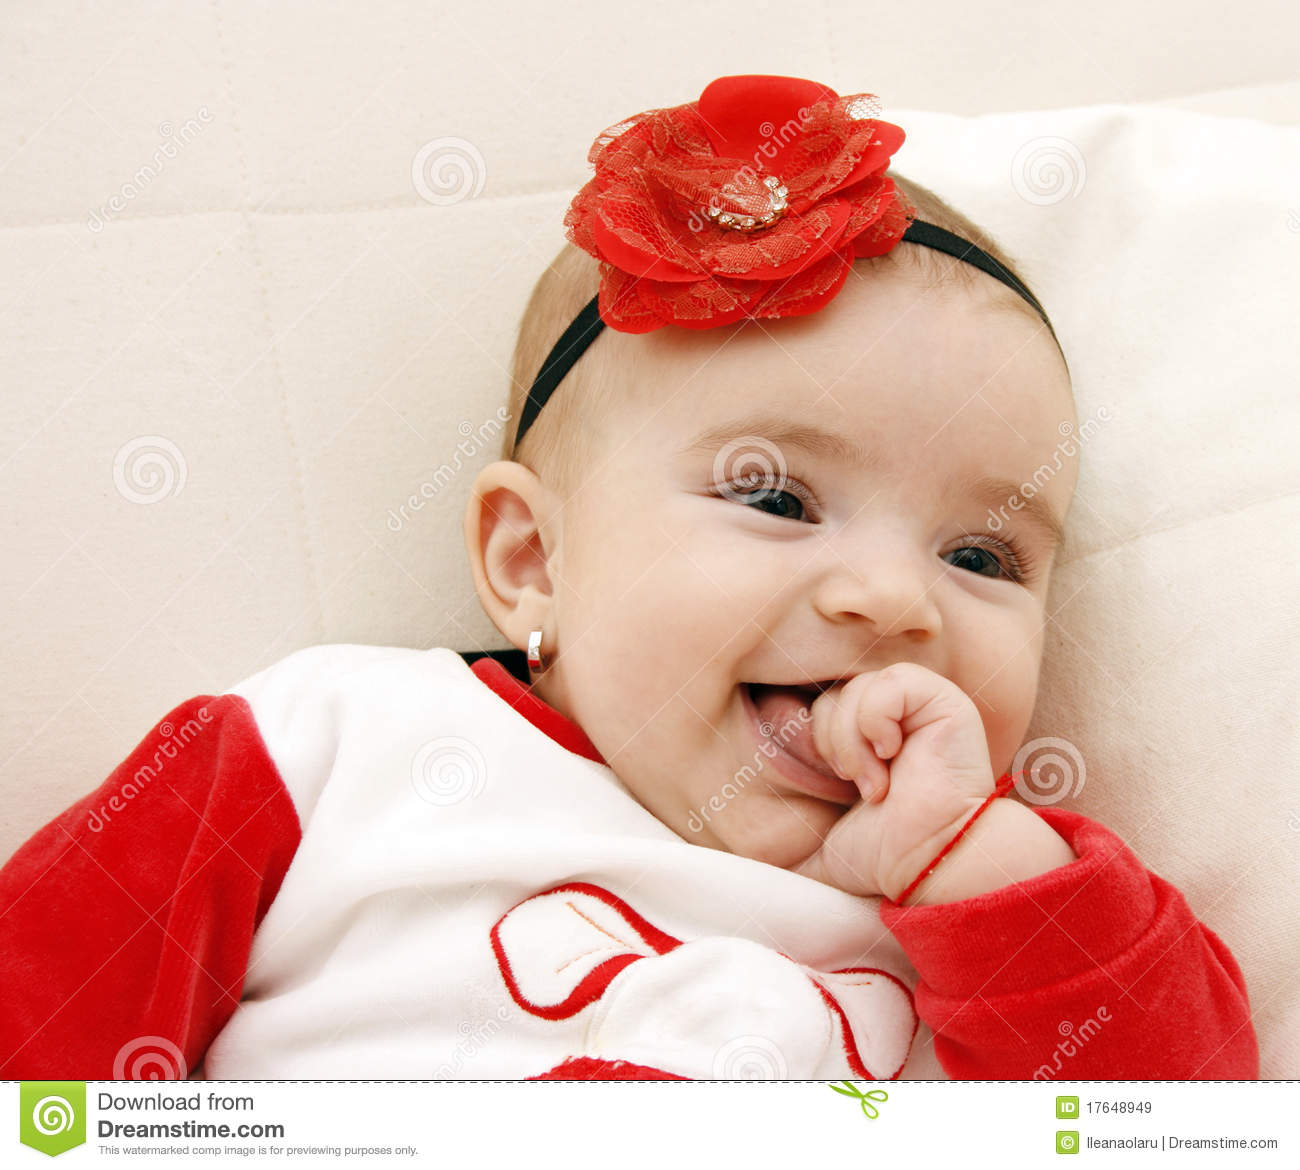 beautiful baby girl royalty free stock images - image: 17648949